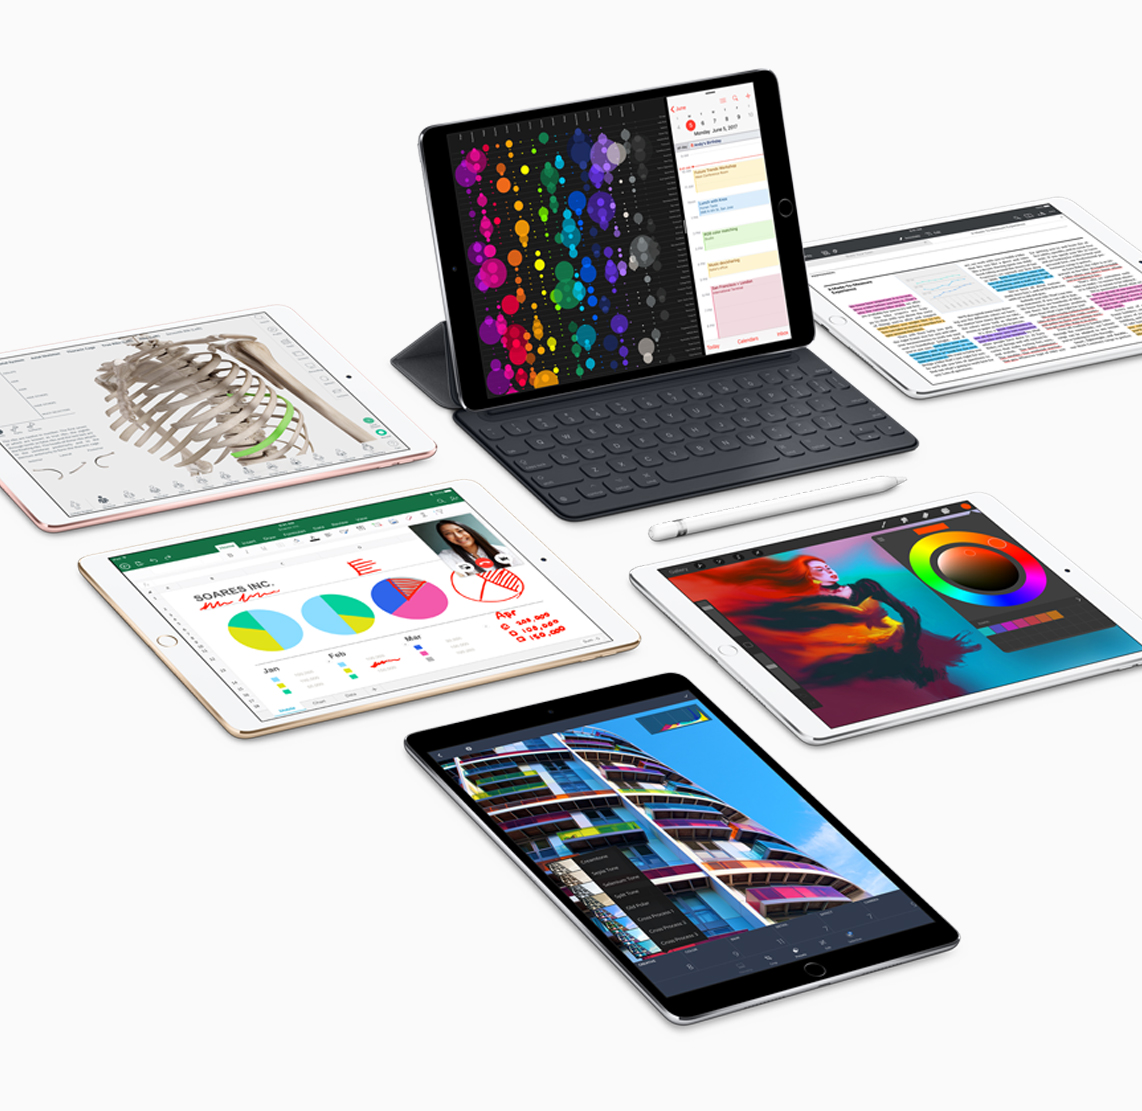 , Apple Intros New iPad Pros with A10X Fusion Chip, 120Hz Displays, and iOS 11, Gadget Pilipinas